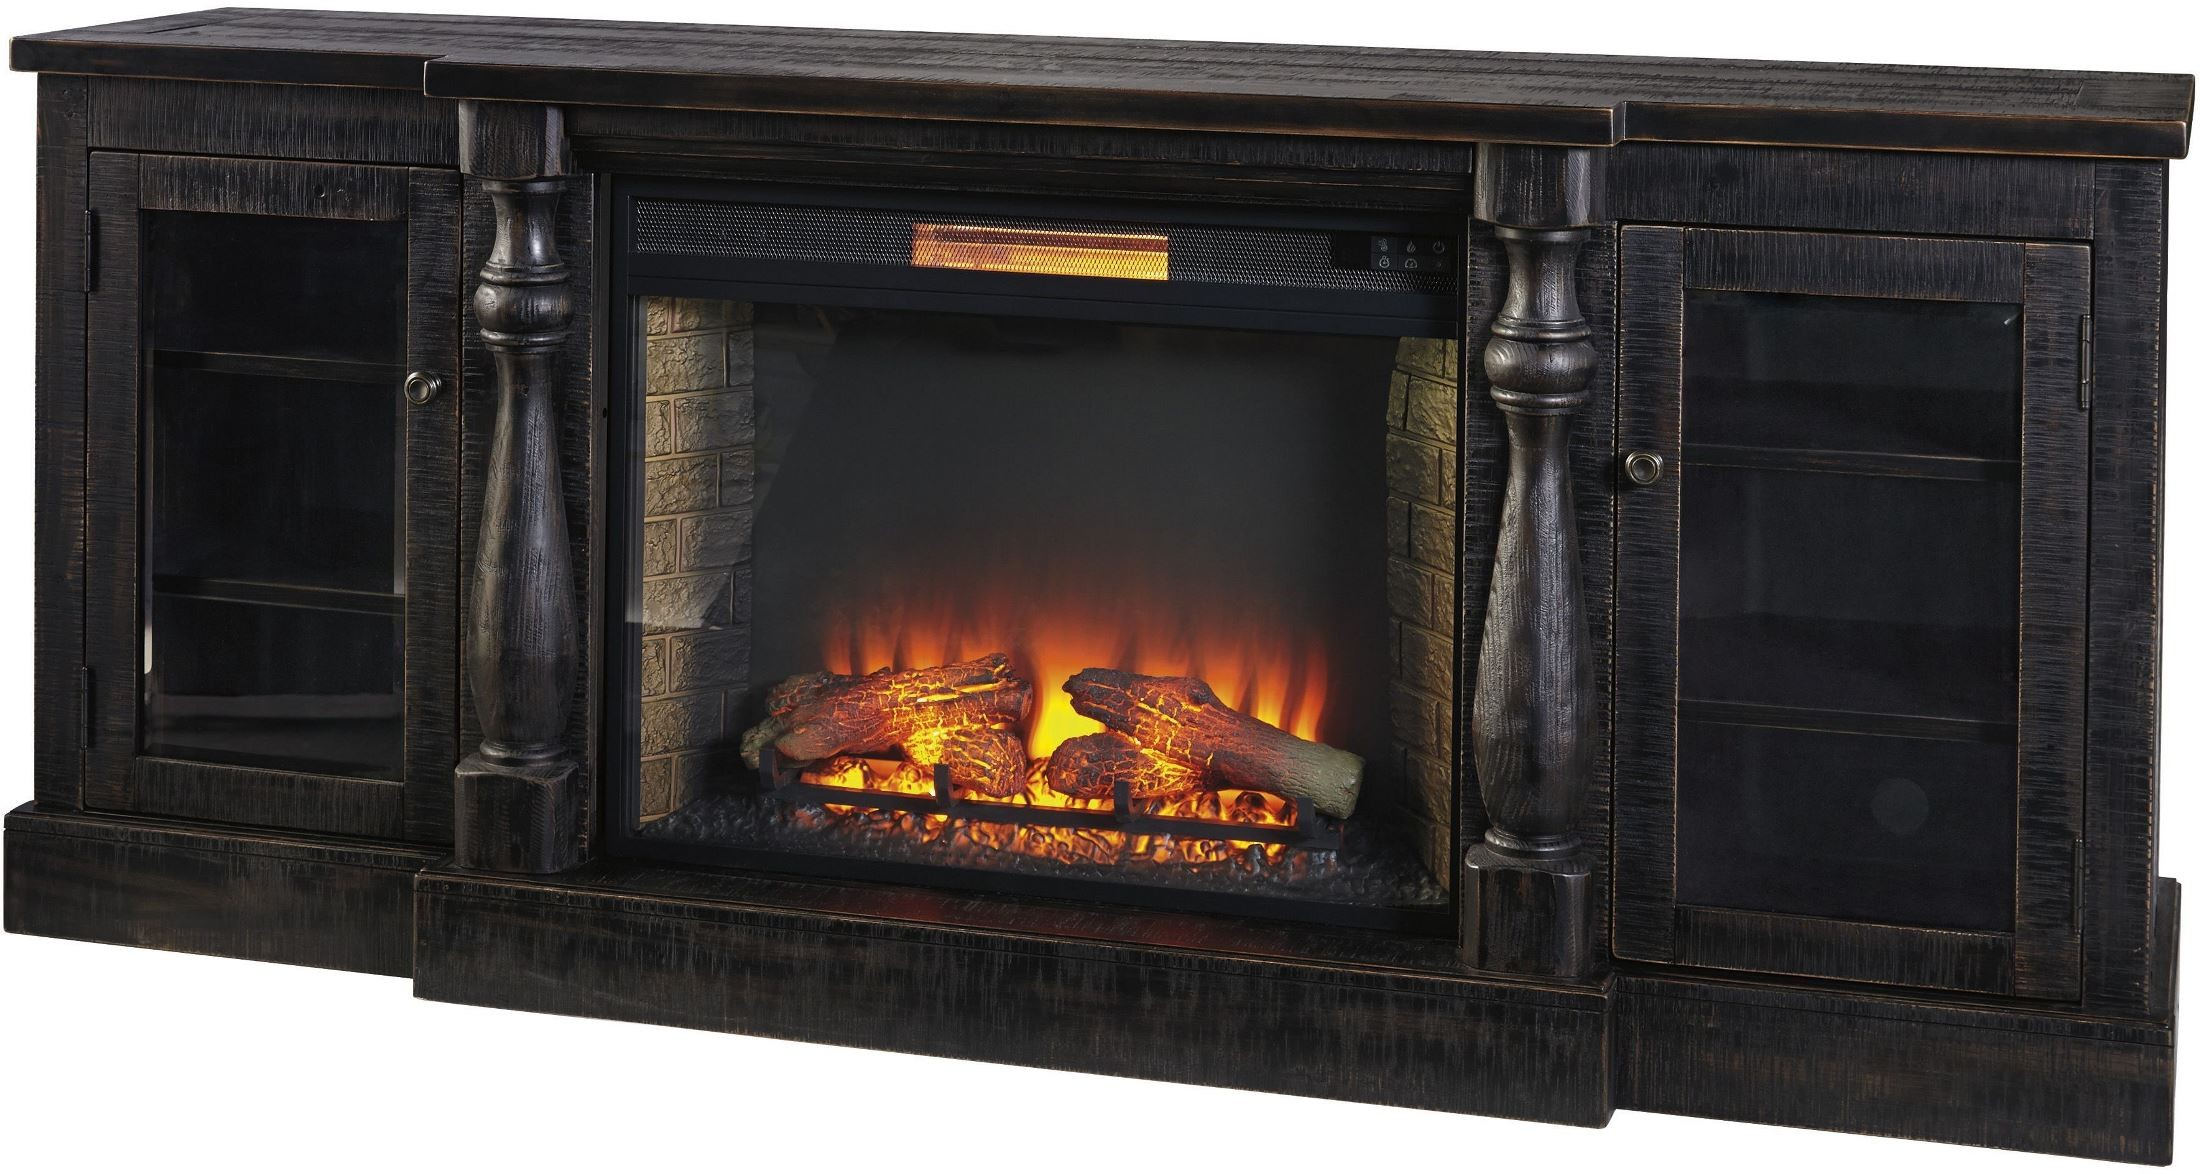 mallacar black rub through xl tv stand with fireplace insert from